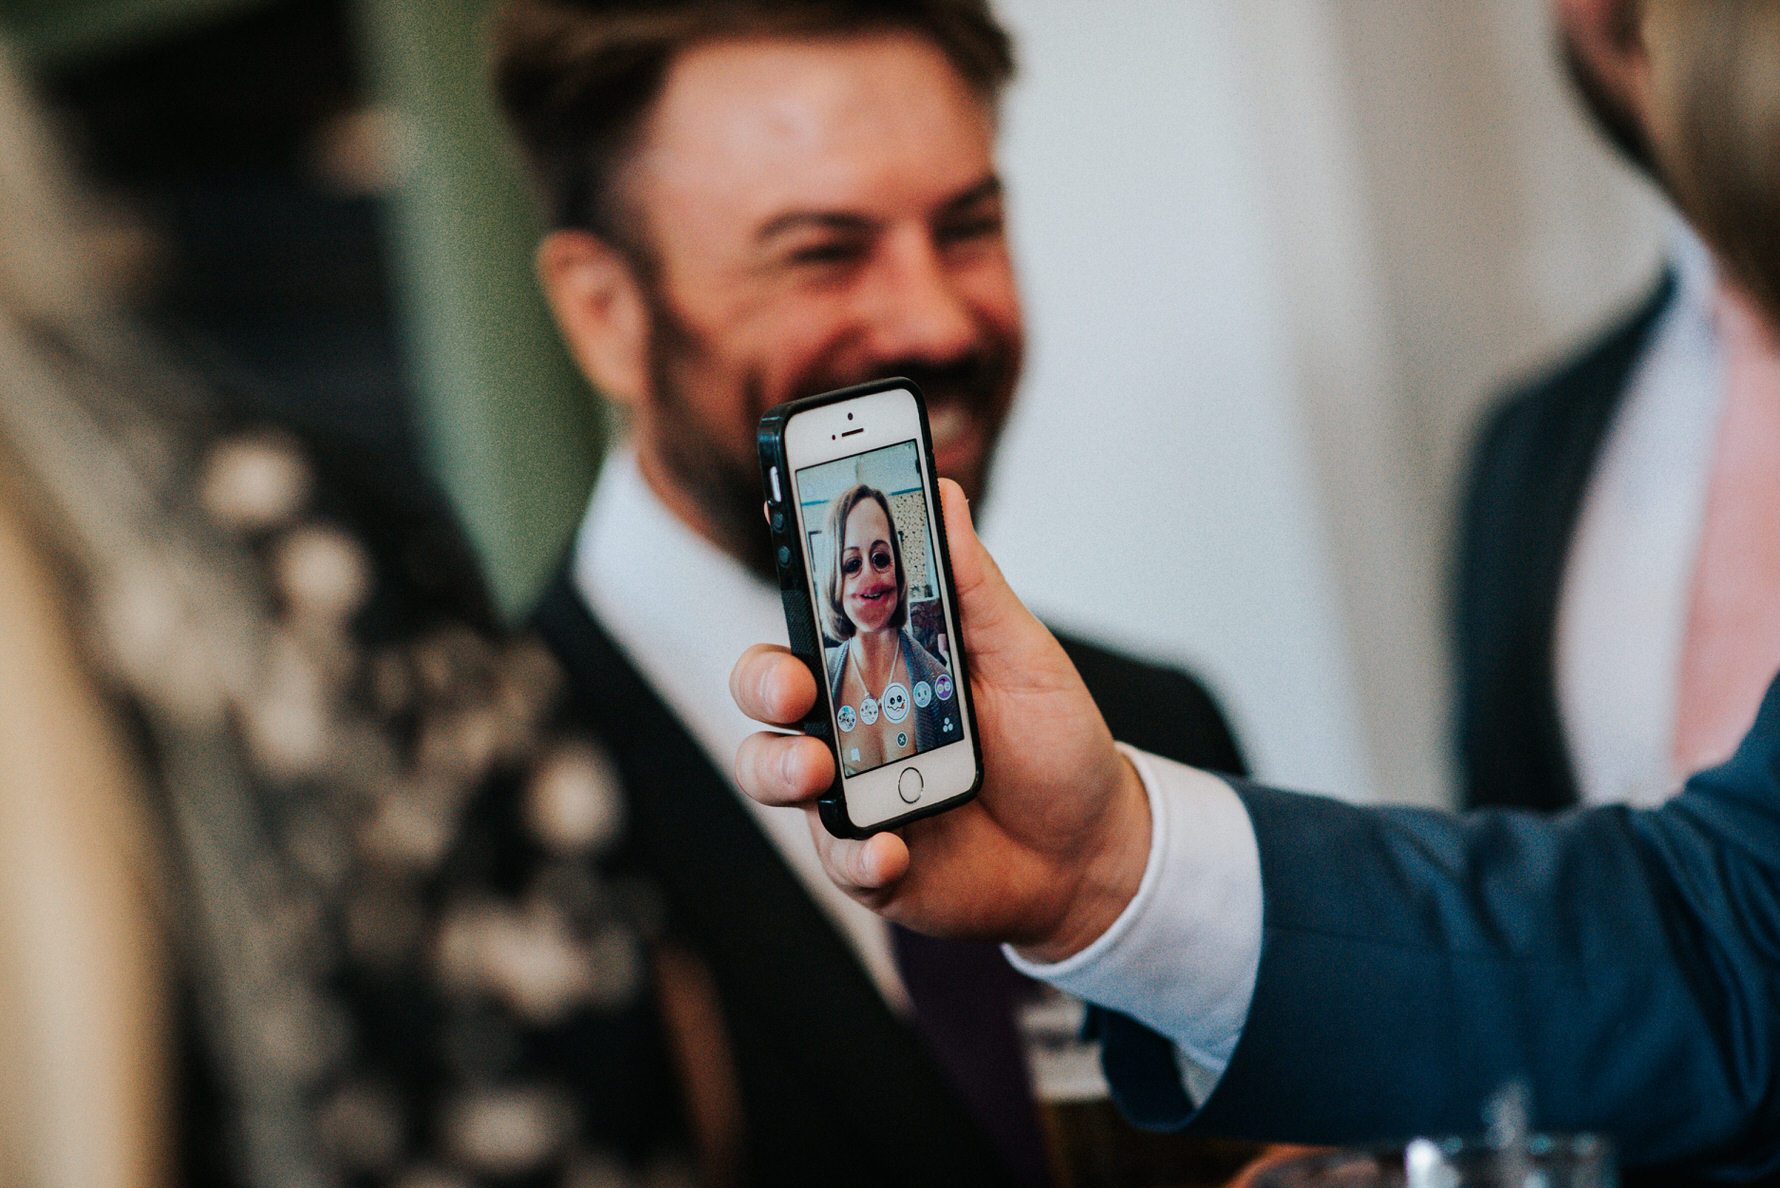 Cheshire Documentary Wedding Photography at Oddfellows, Chester